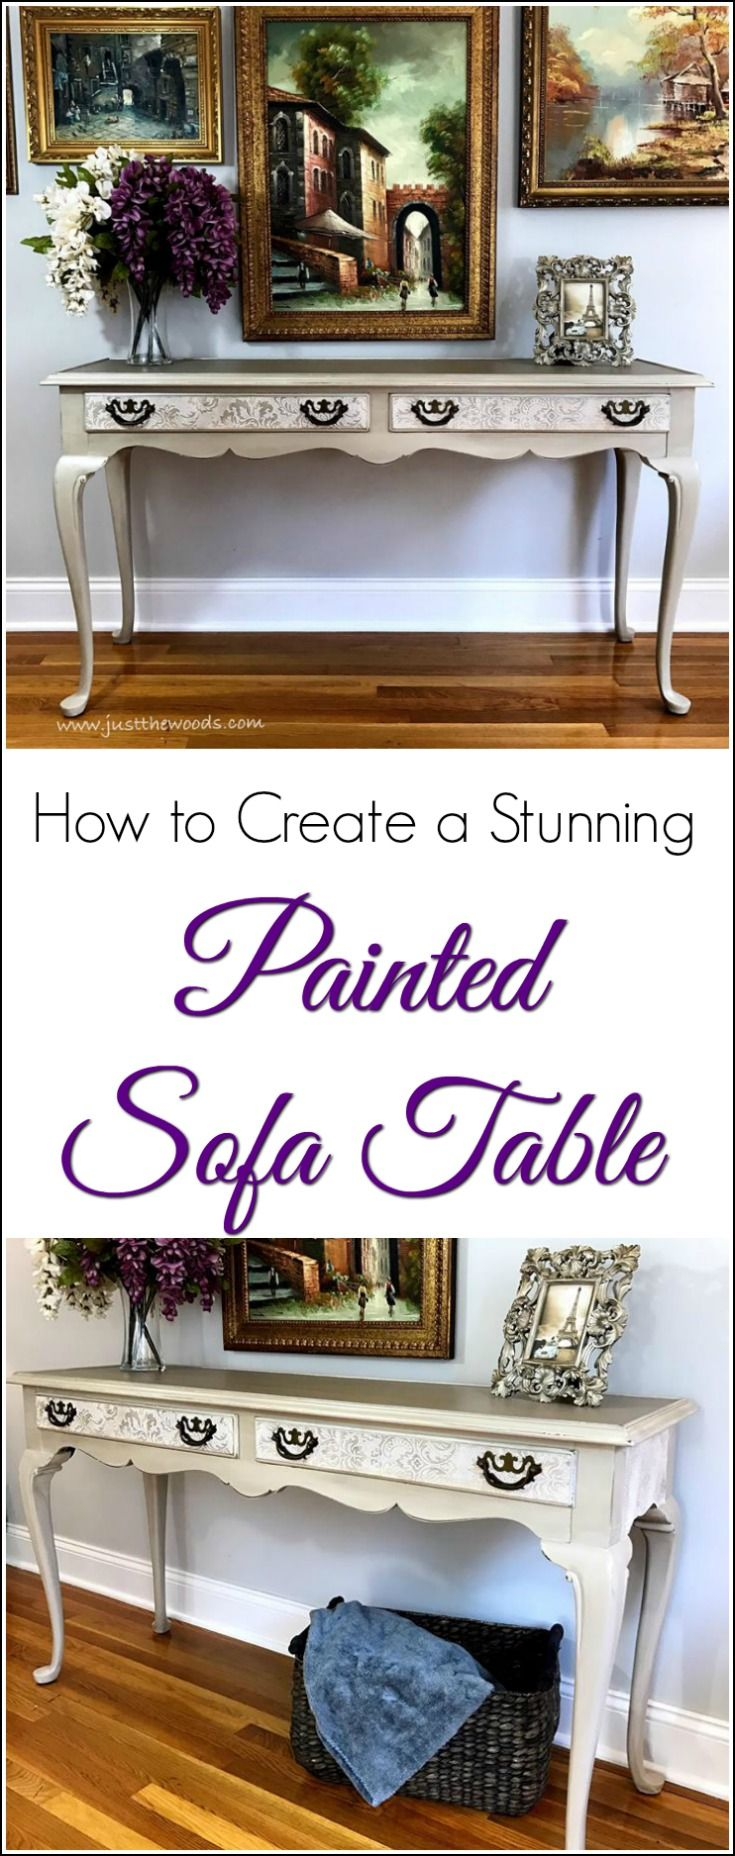 How to Create a Stunning Painted Sofa Table using soft neutrals, wallpaper decoupage and a hint of metallic pearl paint on a painted sofa table. See how to add textured wallpaper decoupage to your painted furniture, along with soft neutral chalk type paint and metallic pearl highlights. Transform a brown sofa table to a gorgeous painted sofa table.  via @justthewoods